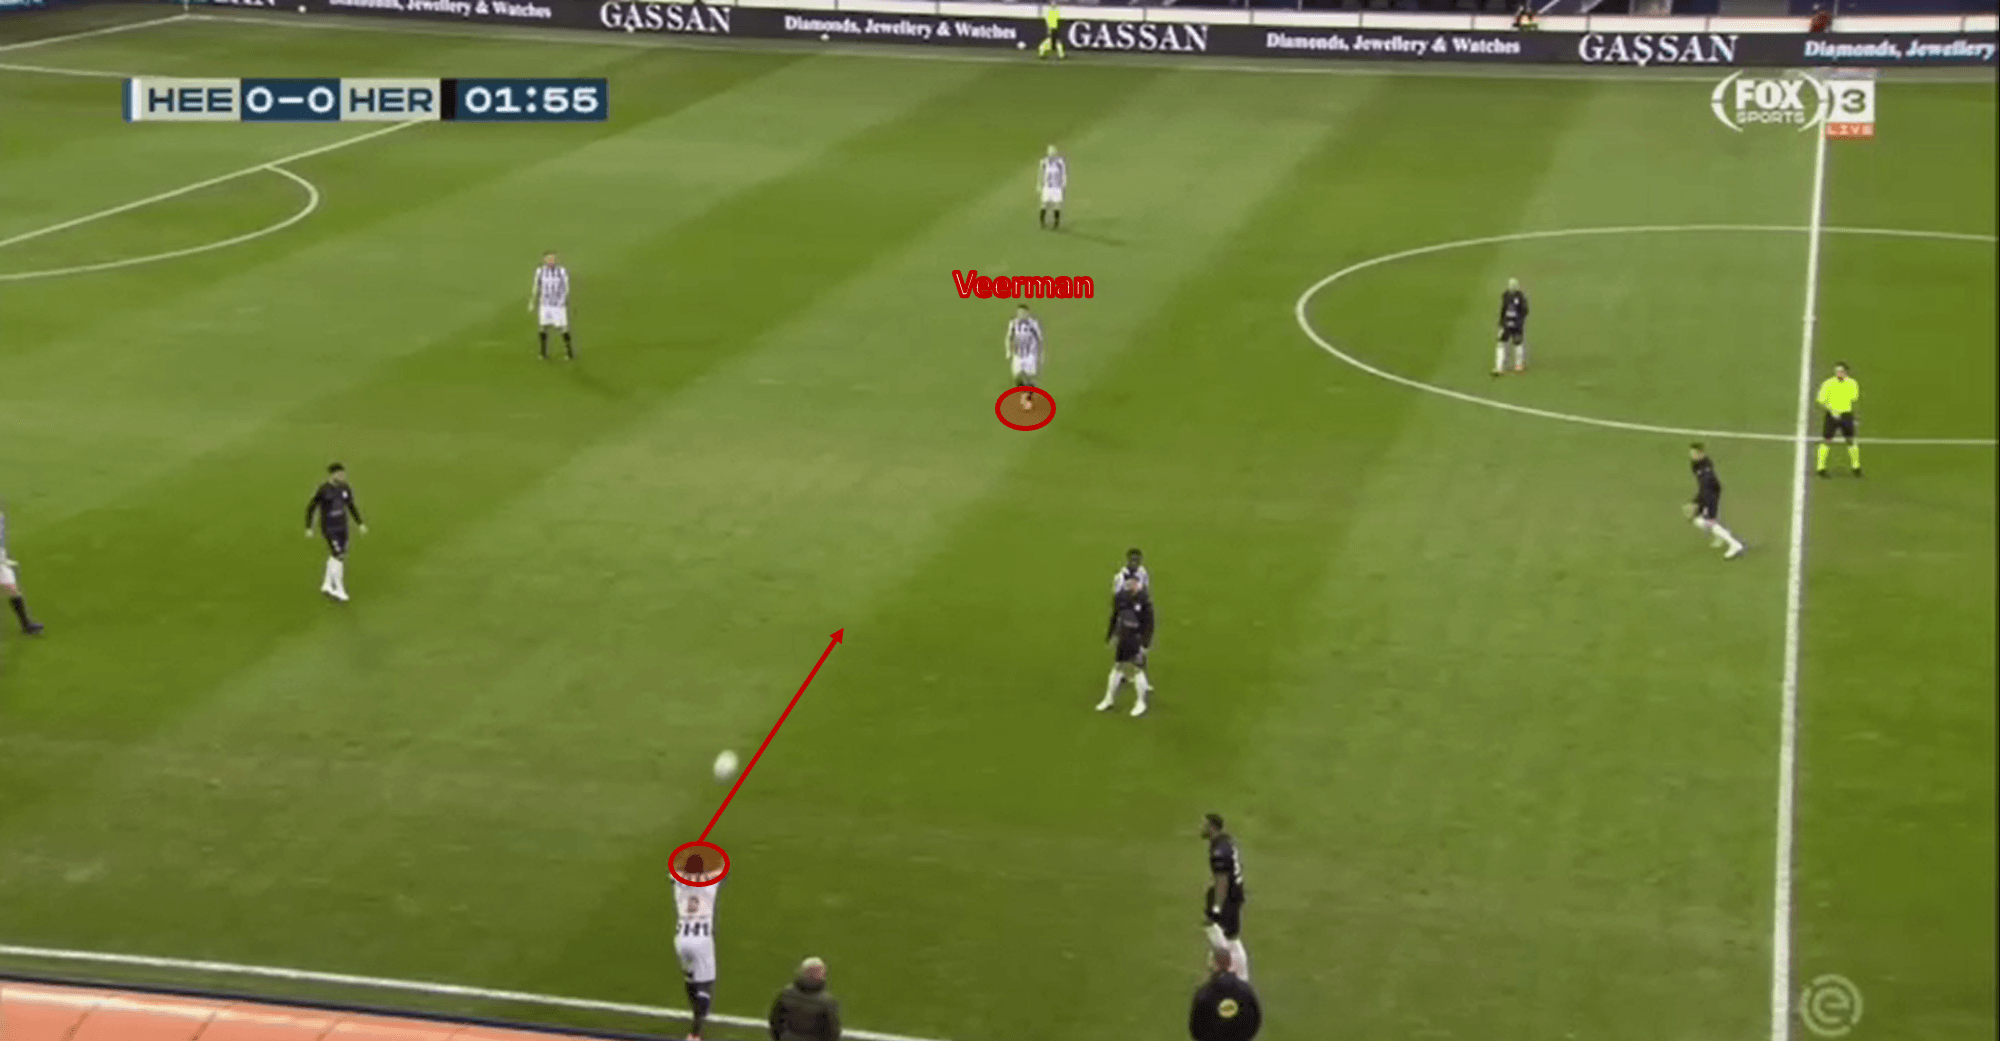 Joey Veerman: Is he ready for the Premier League? - scout report - tactical analysis tactics